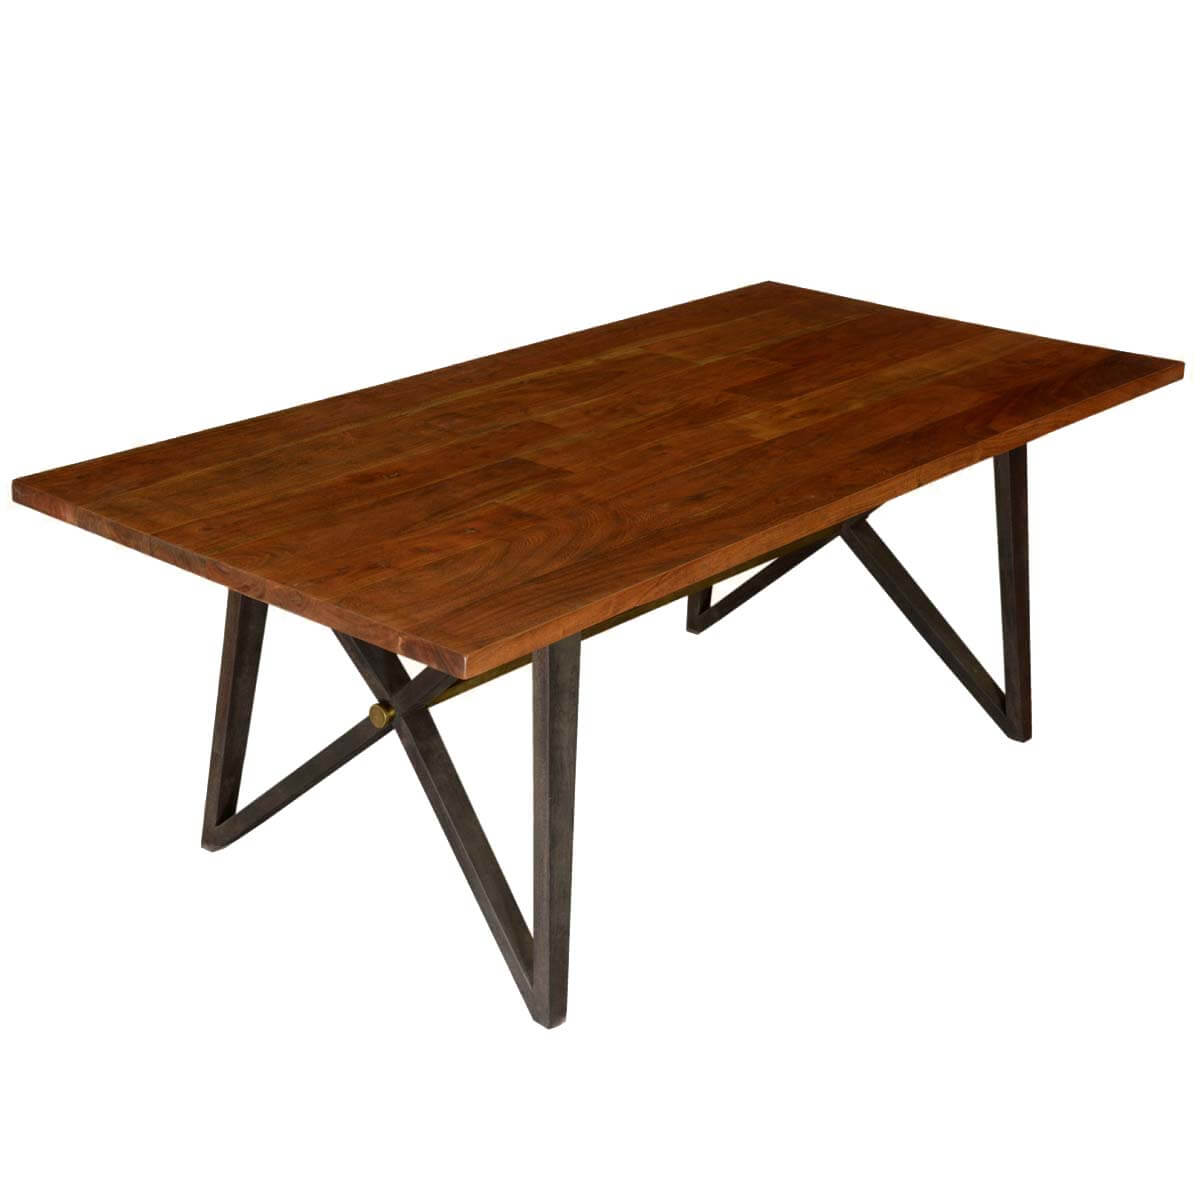 Wonderful image of McKay Rustic X Frame Double Base Solid Wood Dining Table with #67310C color and 1200x1200 pixels